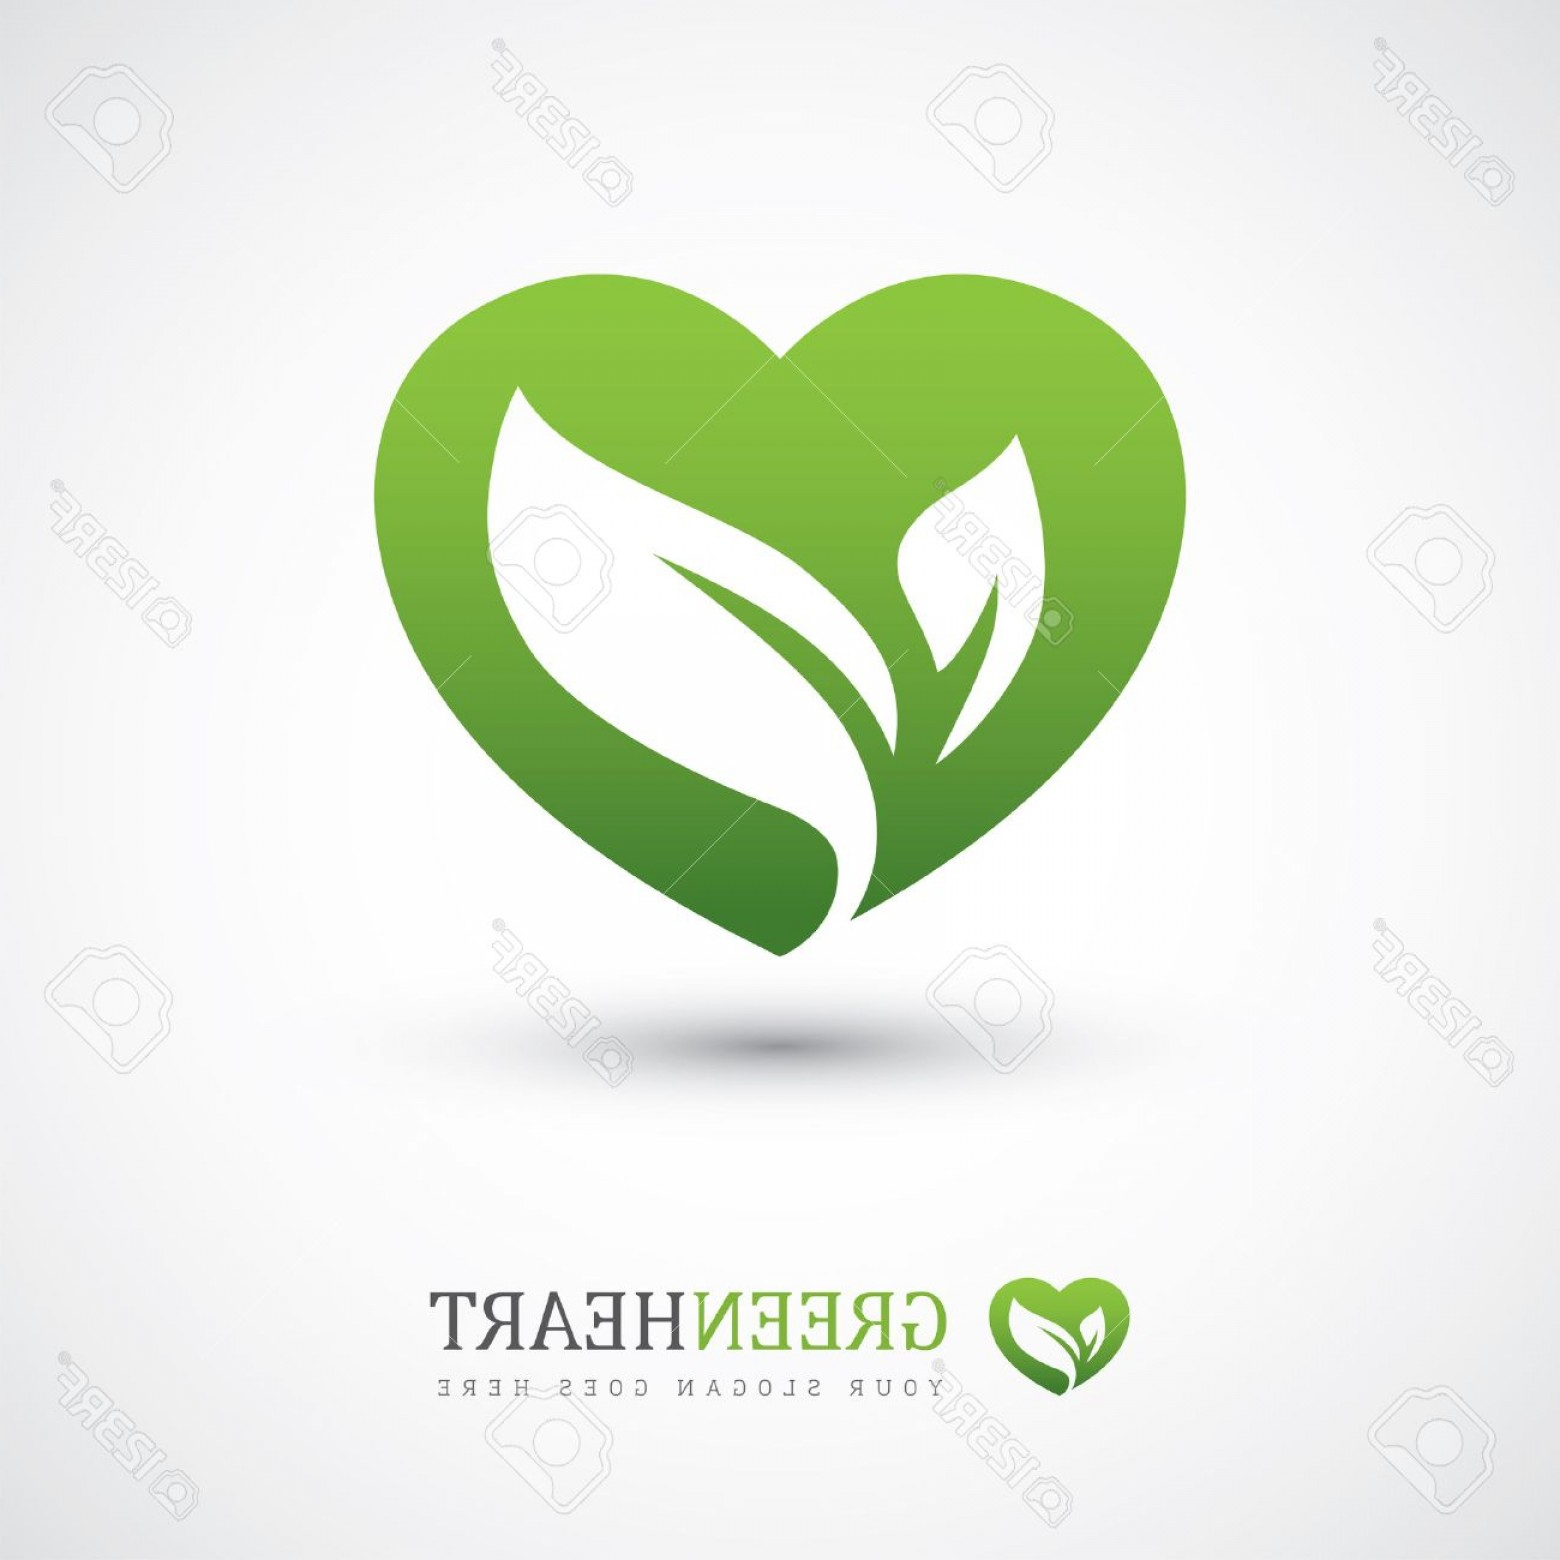 Vegan Heart Vectors: Photostock Vector Green Vector Icon With Heart Shape And Two Leaves Can Be Used For Eco Vegan Herbal Healthcare Or Nat